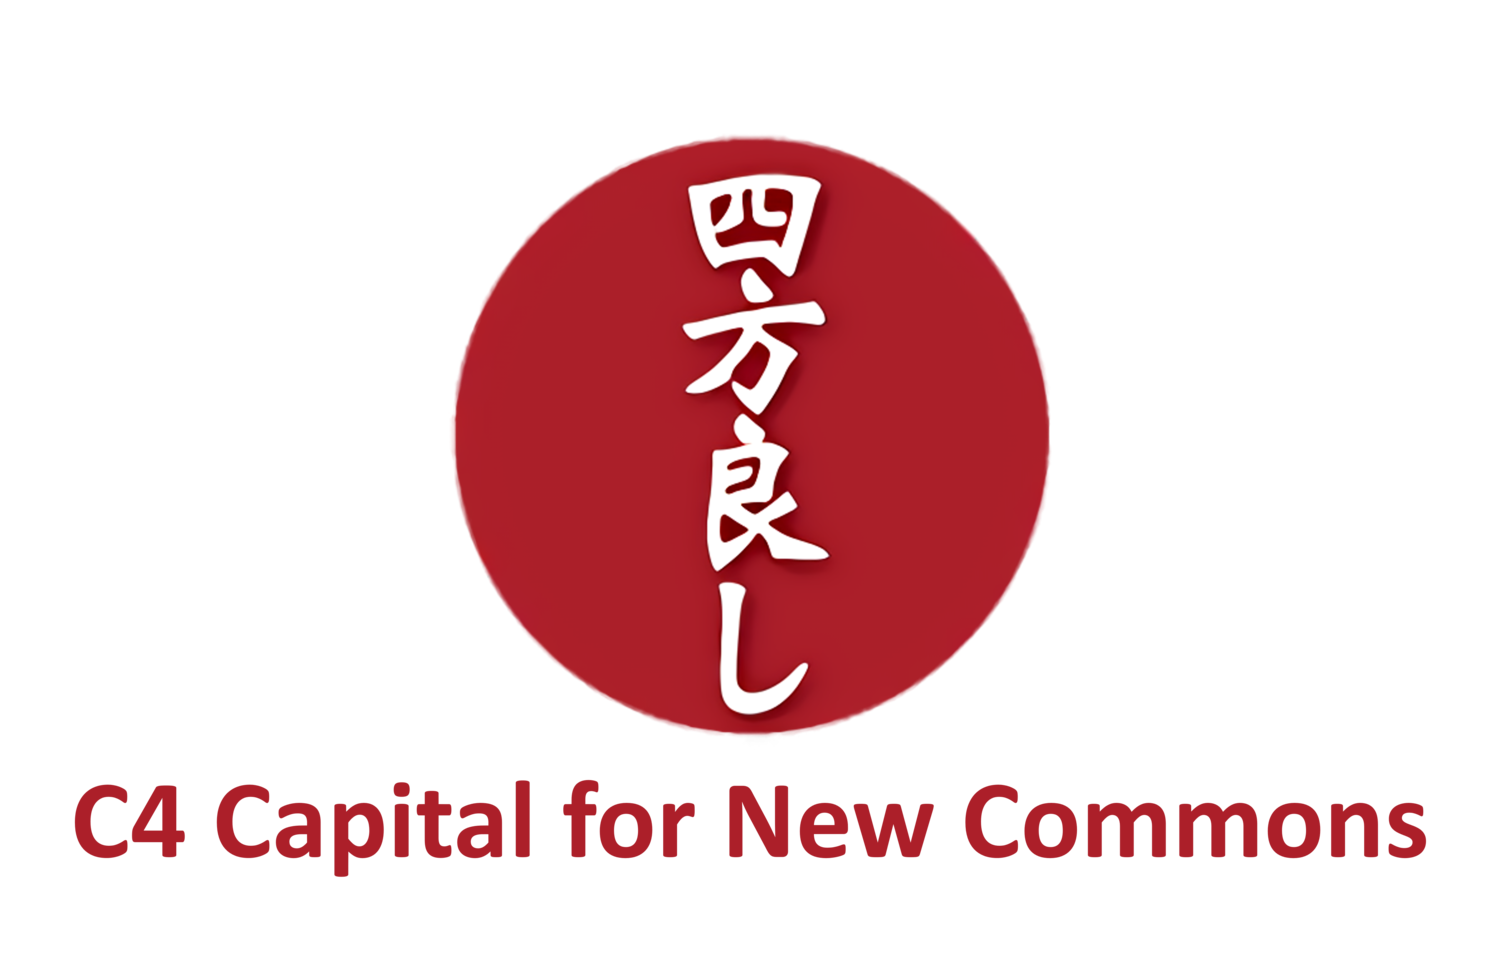 C4 Capital for New Commons